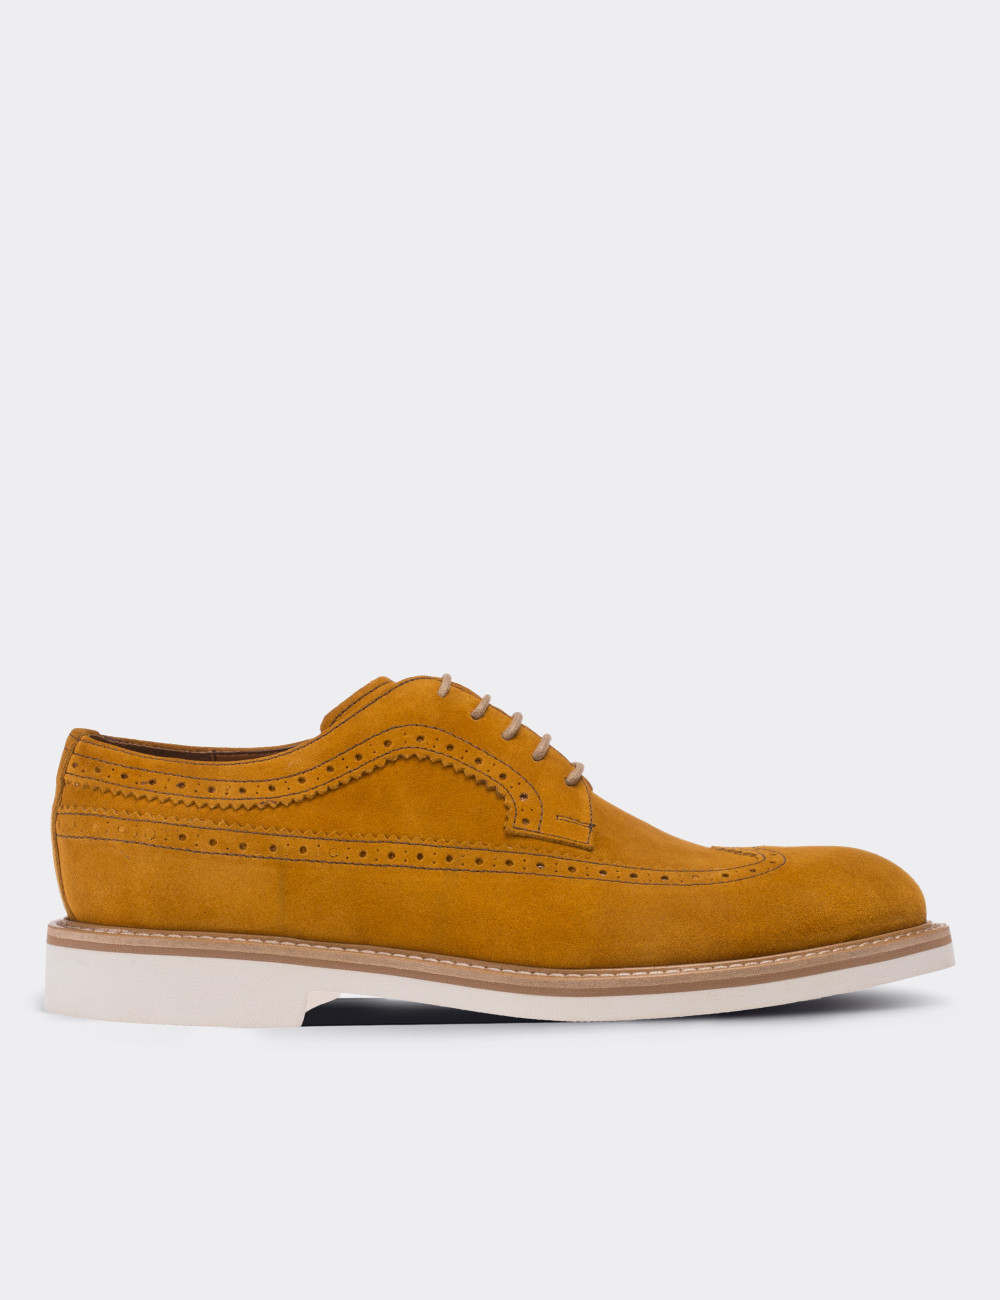 Yellow Suede Calfskin Lace-up Shoes - Deery